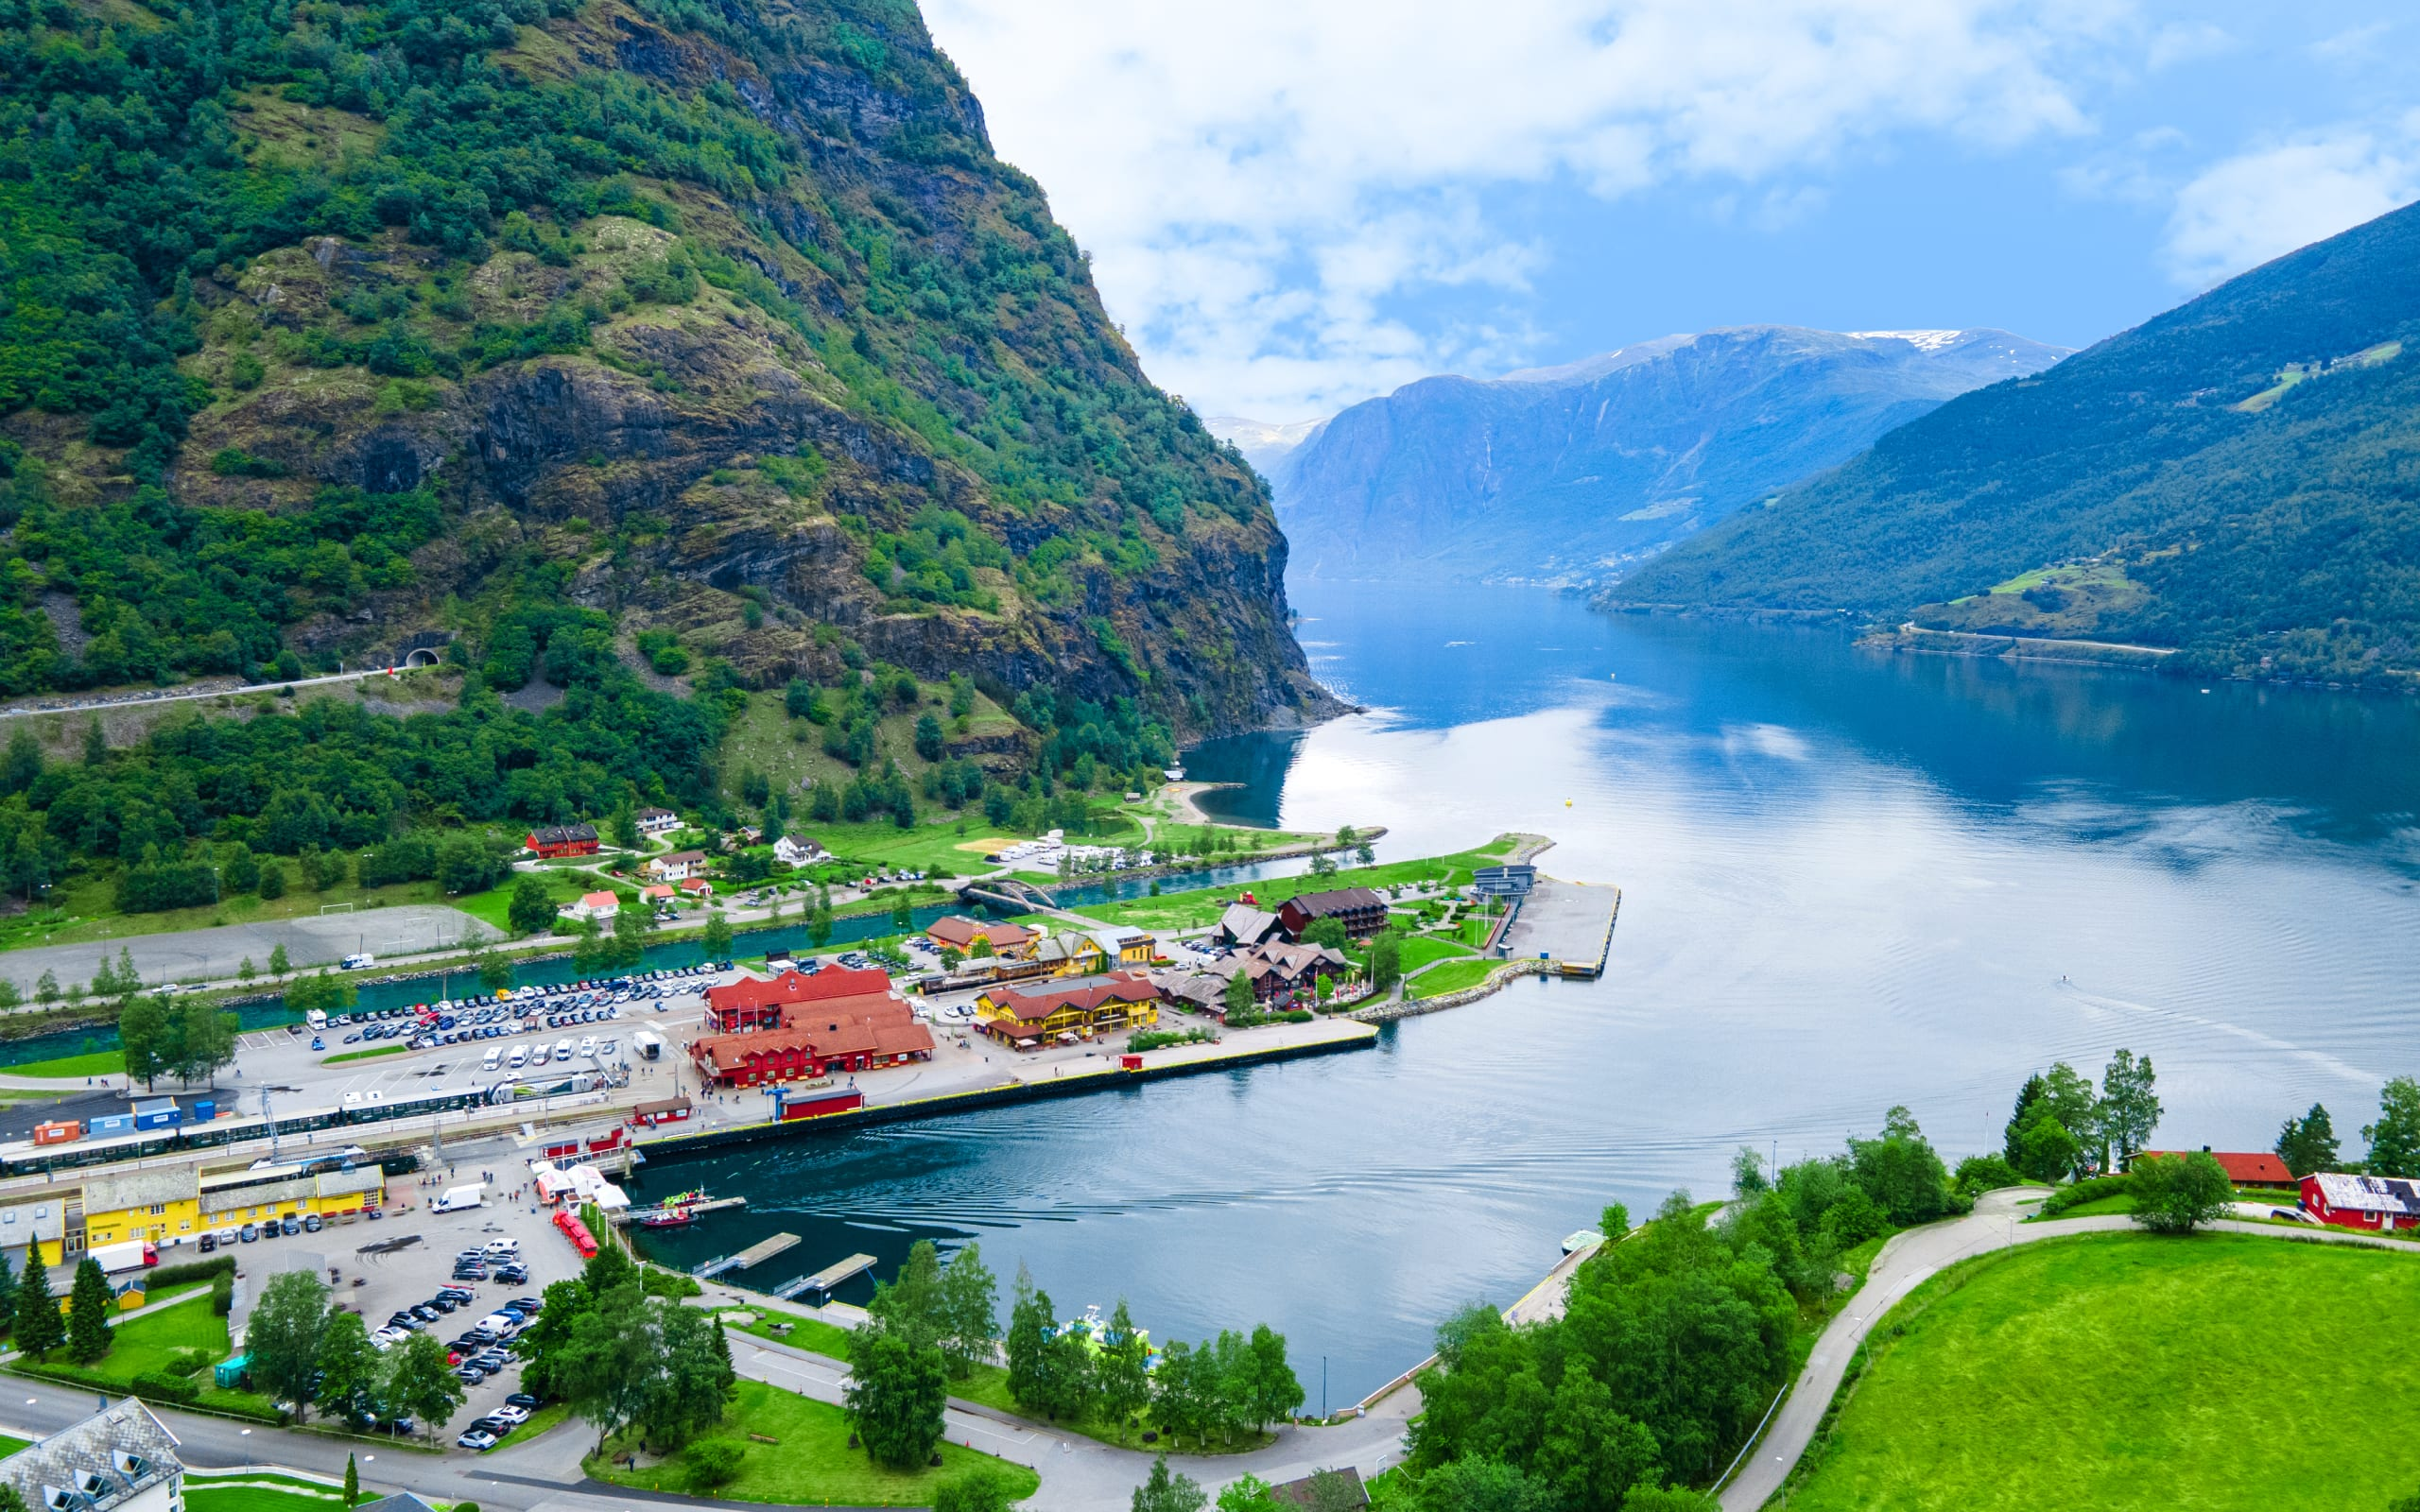 The harbor area of Flåm with lush mountainsides